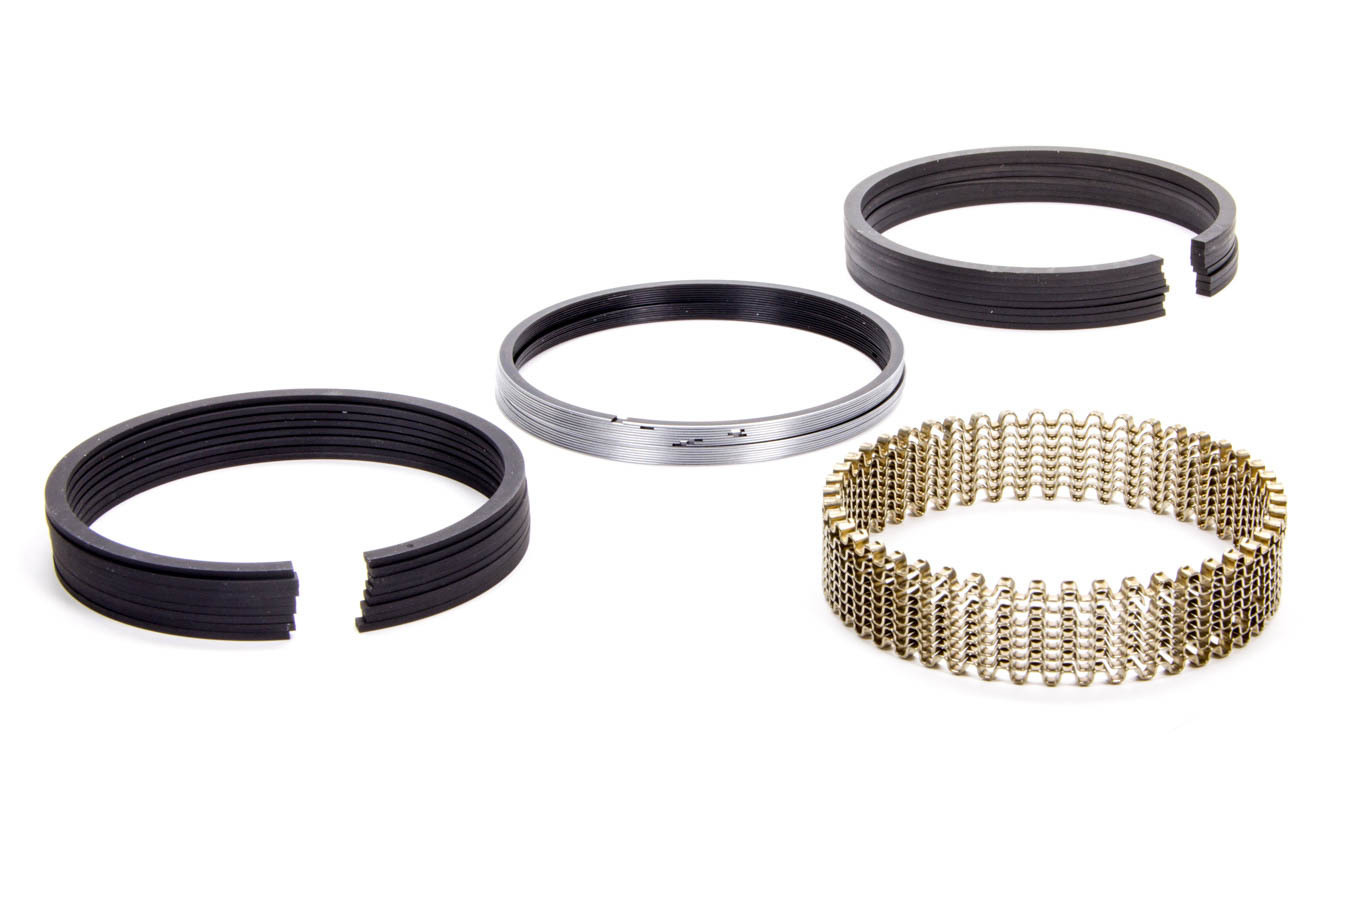 Hastings 139020 Piston Rings, 4.020 in Bore, 5/64 x 5/64 x 3/16 in Thick, Standard Tension, Iron, 8 Cylinder, Kit